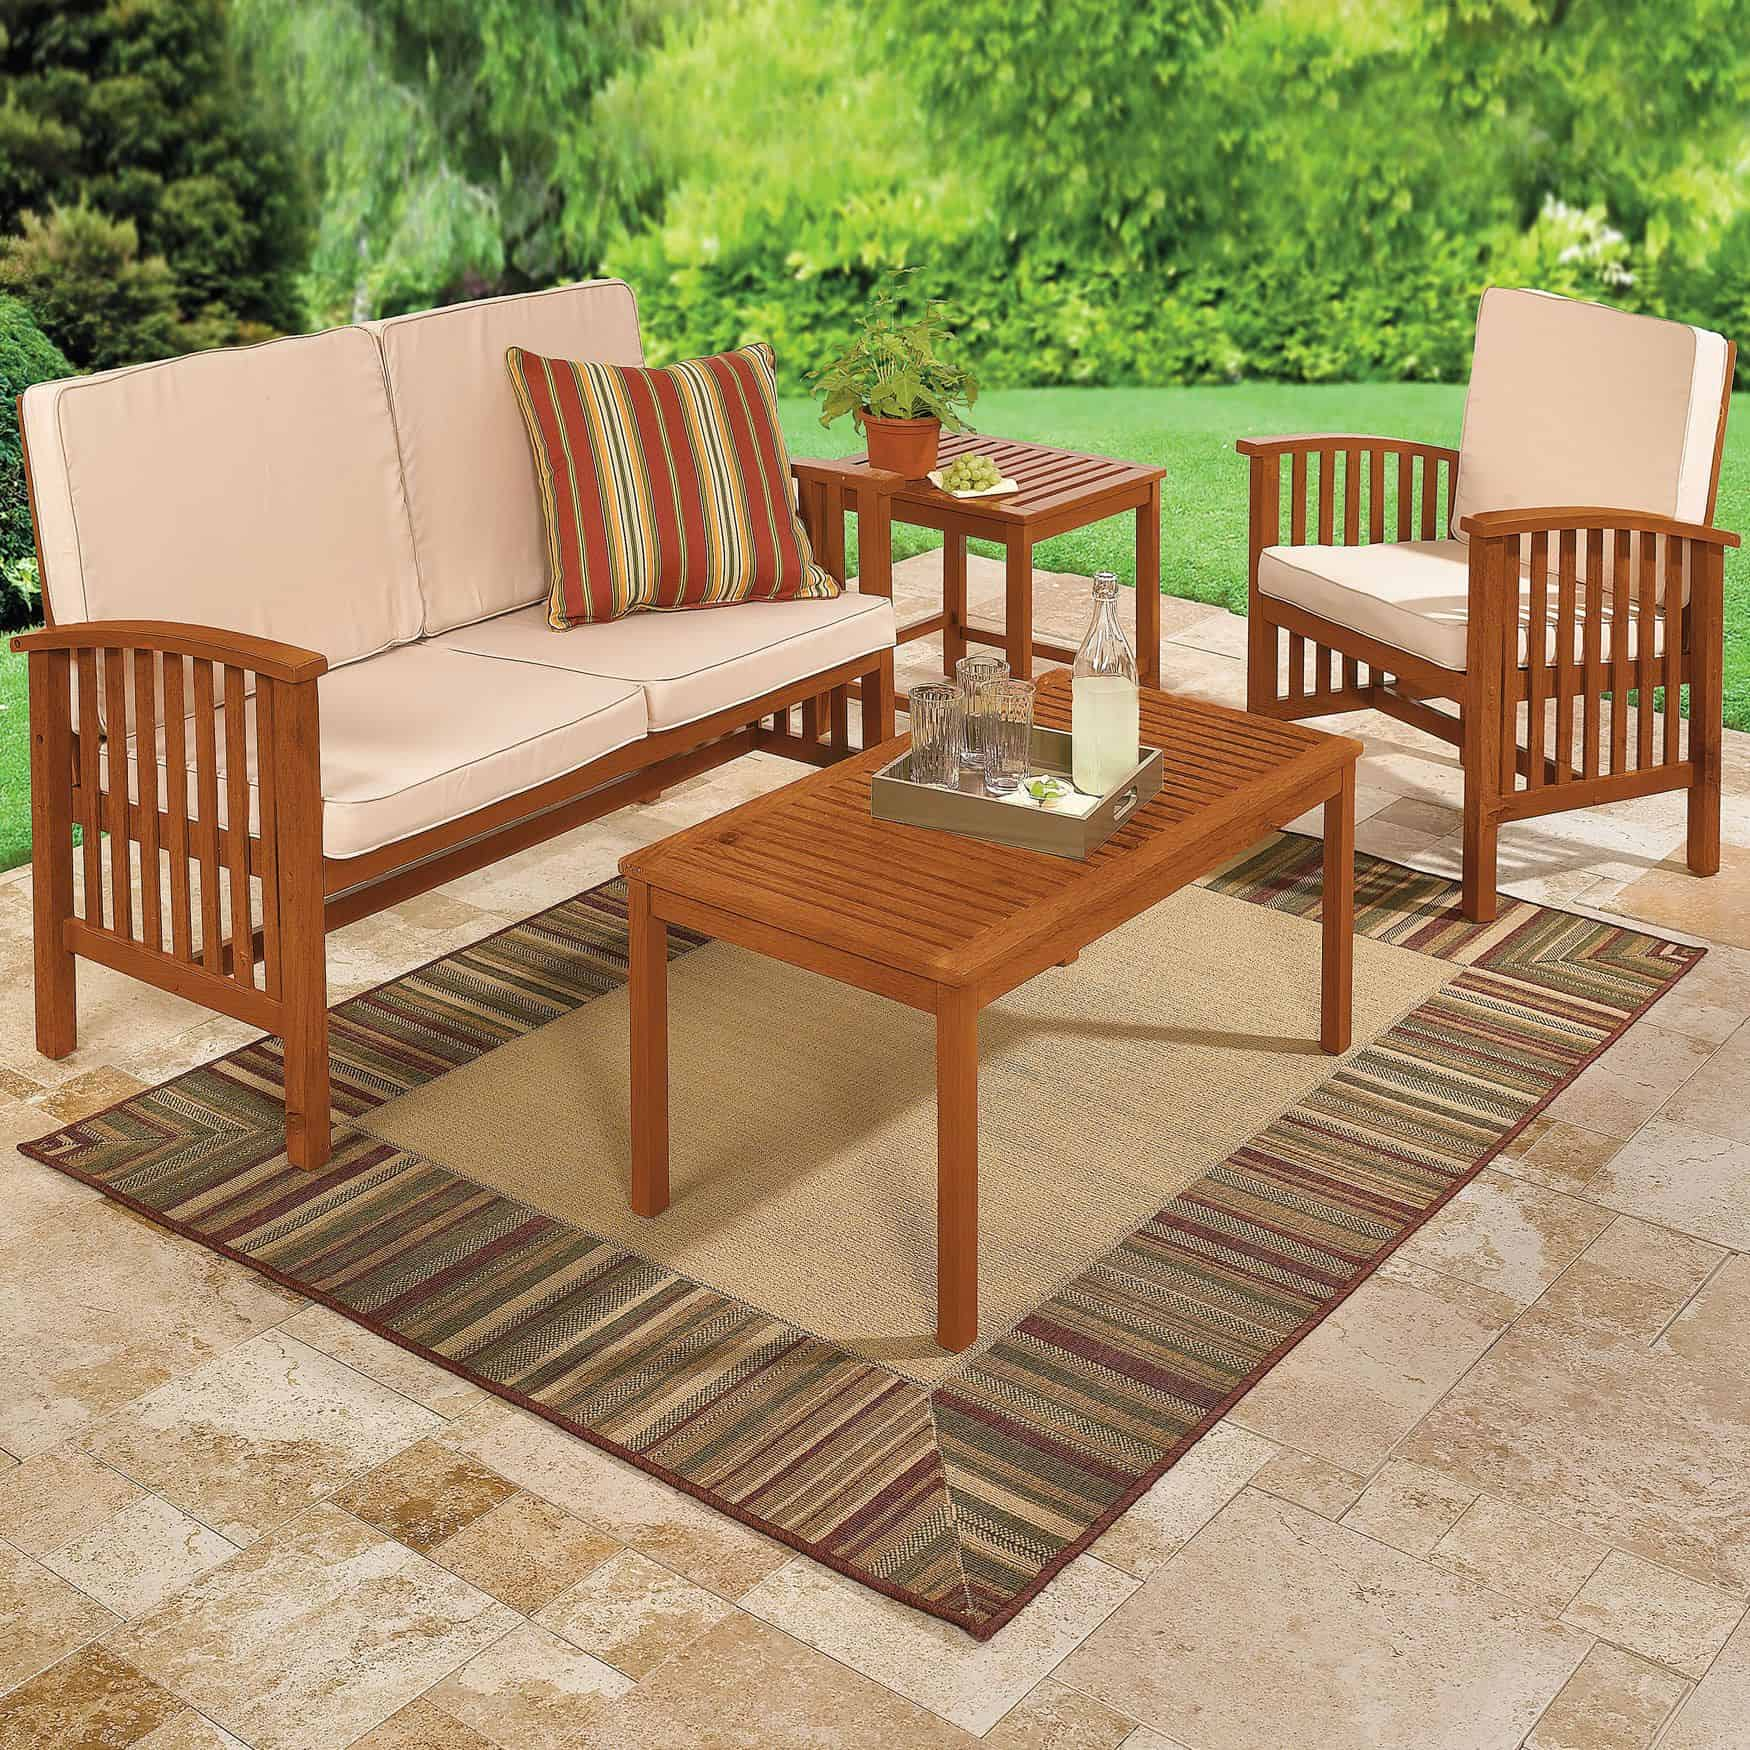 Trendy Outdoor Furniture: Stylish Summer With BrylaneHome Outdoor Furniture